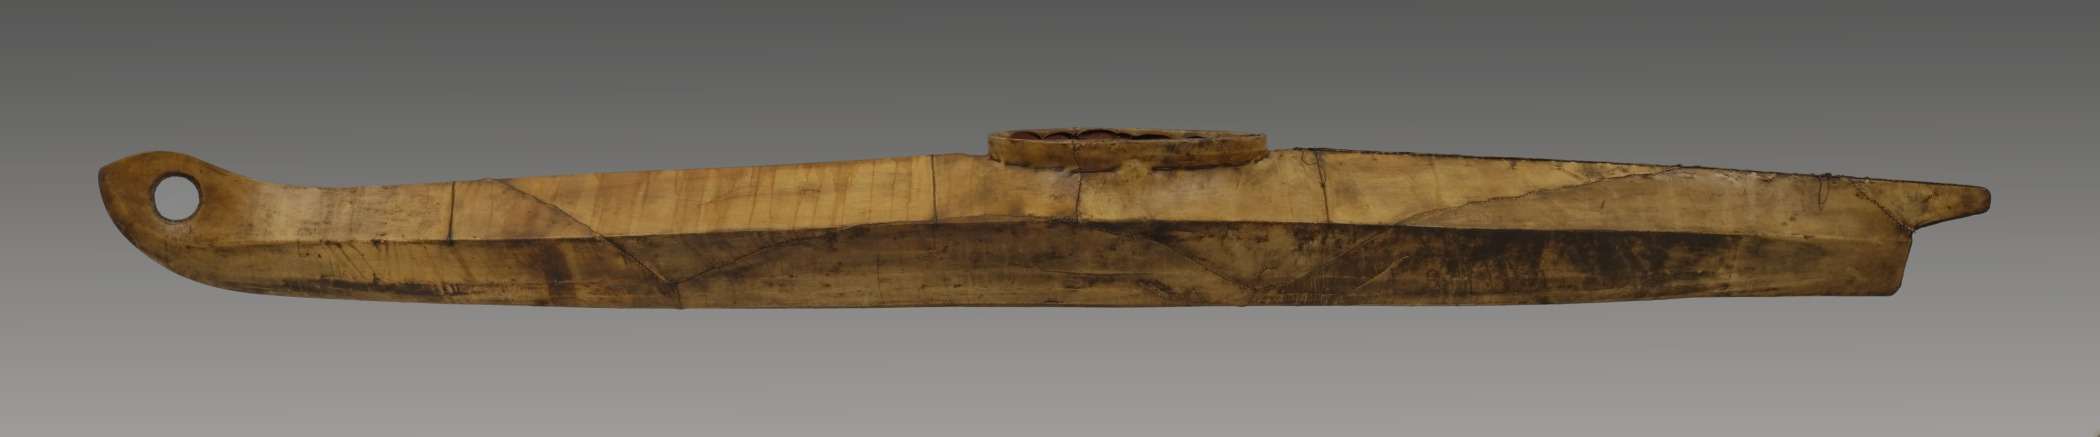 Yup'ik, one-hatch kayak, collected 1894. Wood and hide, 180 × 24 × 17 in.; weight: 40 lb. Hood Museum of Art, Dartmouth College: Gift of the Smithsonian Institution; 47.30.10864.